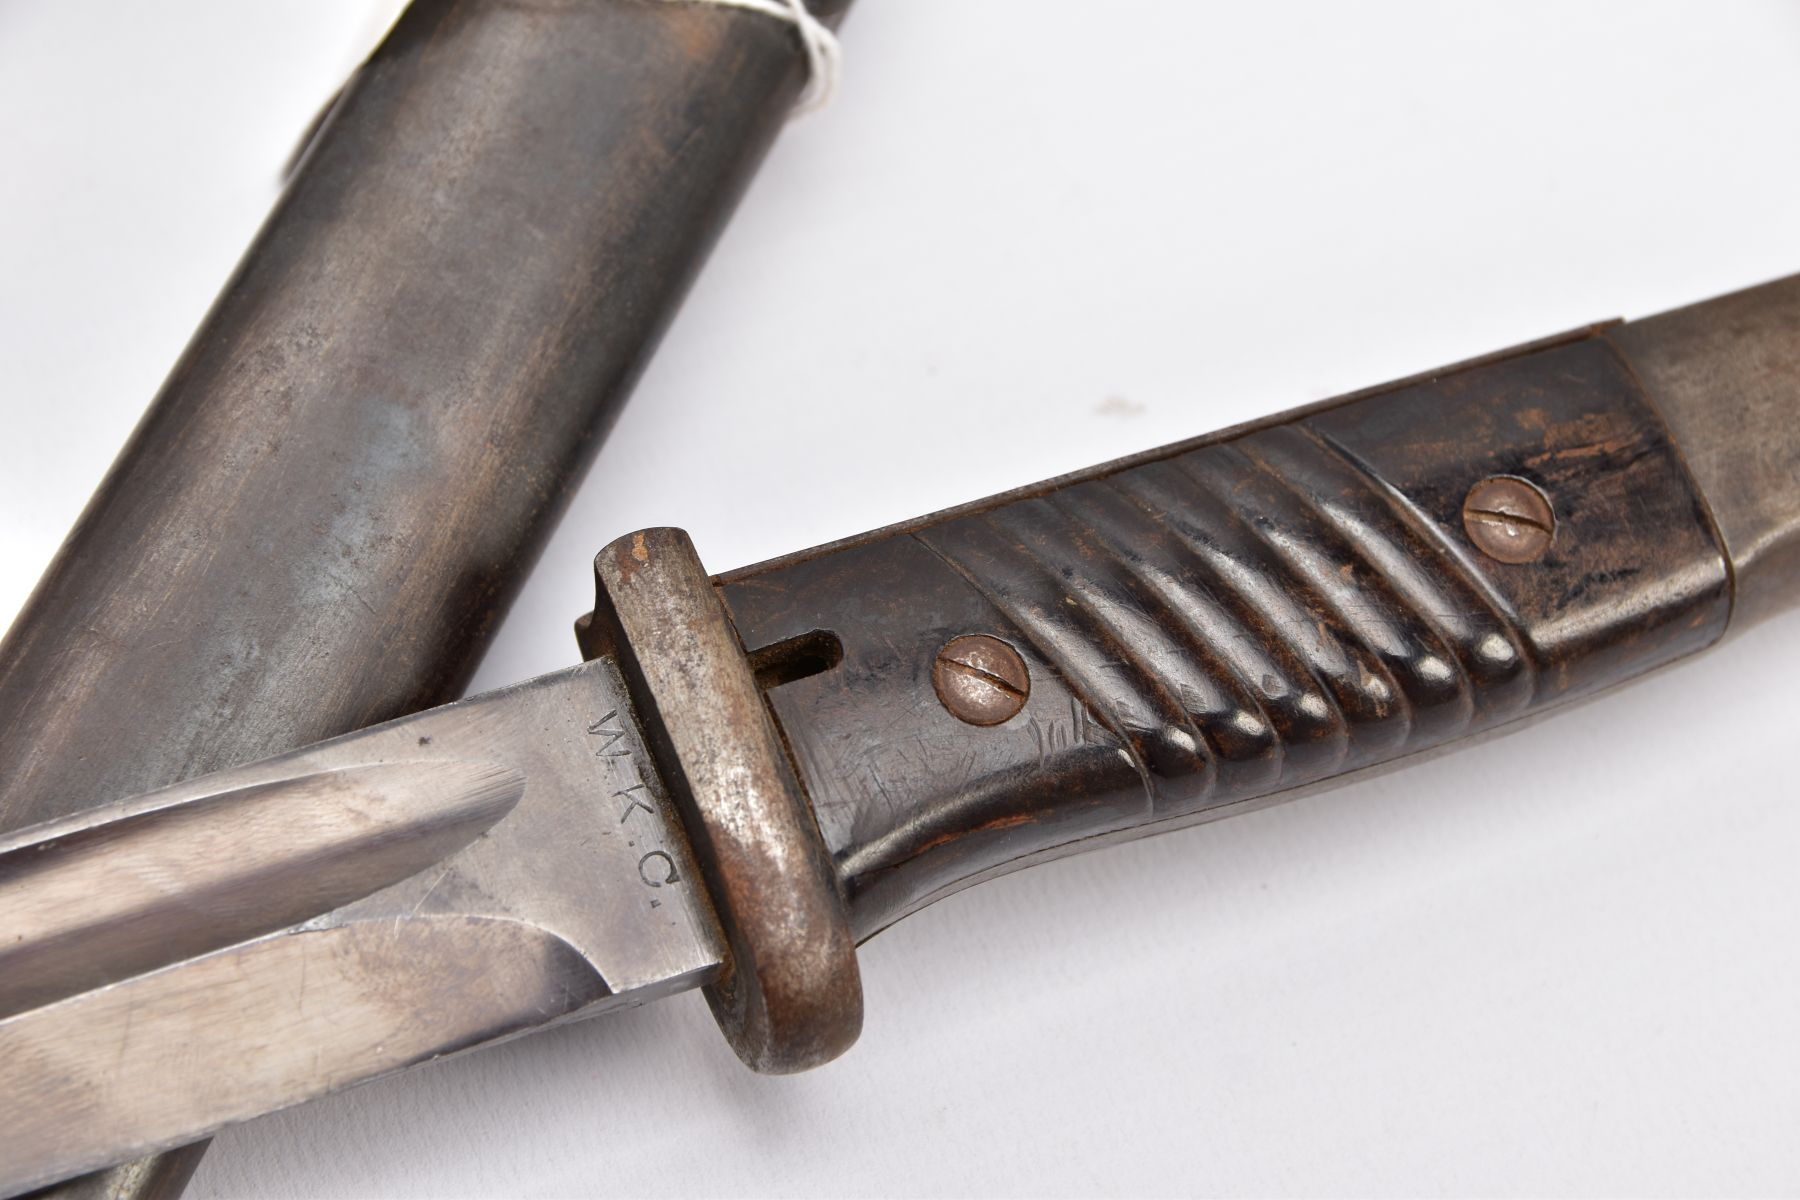 BRITISH 1907 PATTERN WWI ERA SMLE RIFLE BAYONET AND SCABBARD, proof marked etc and a German WWII - Image 7 of 9